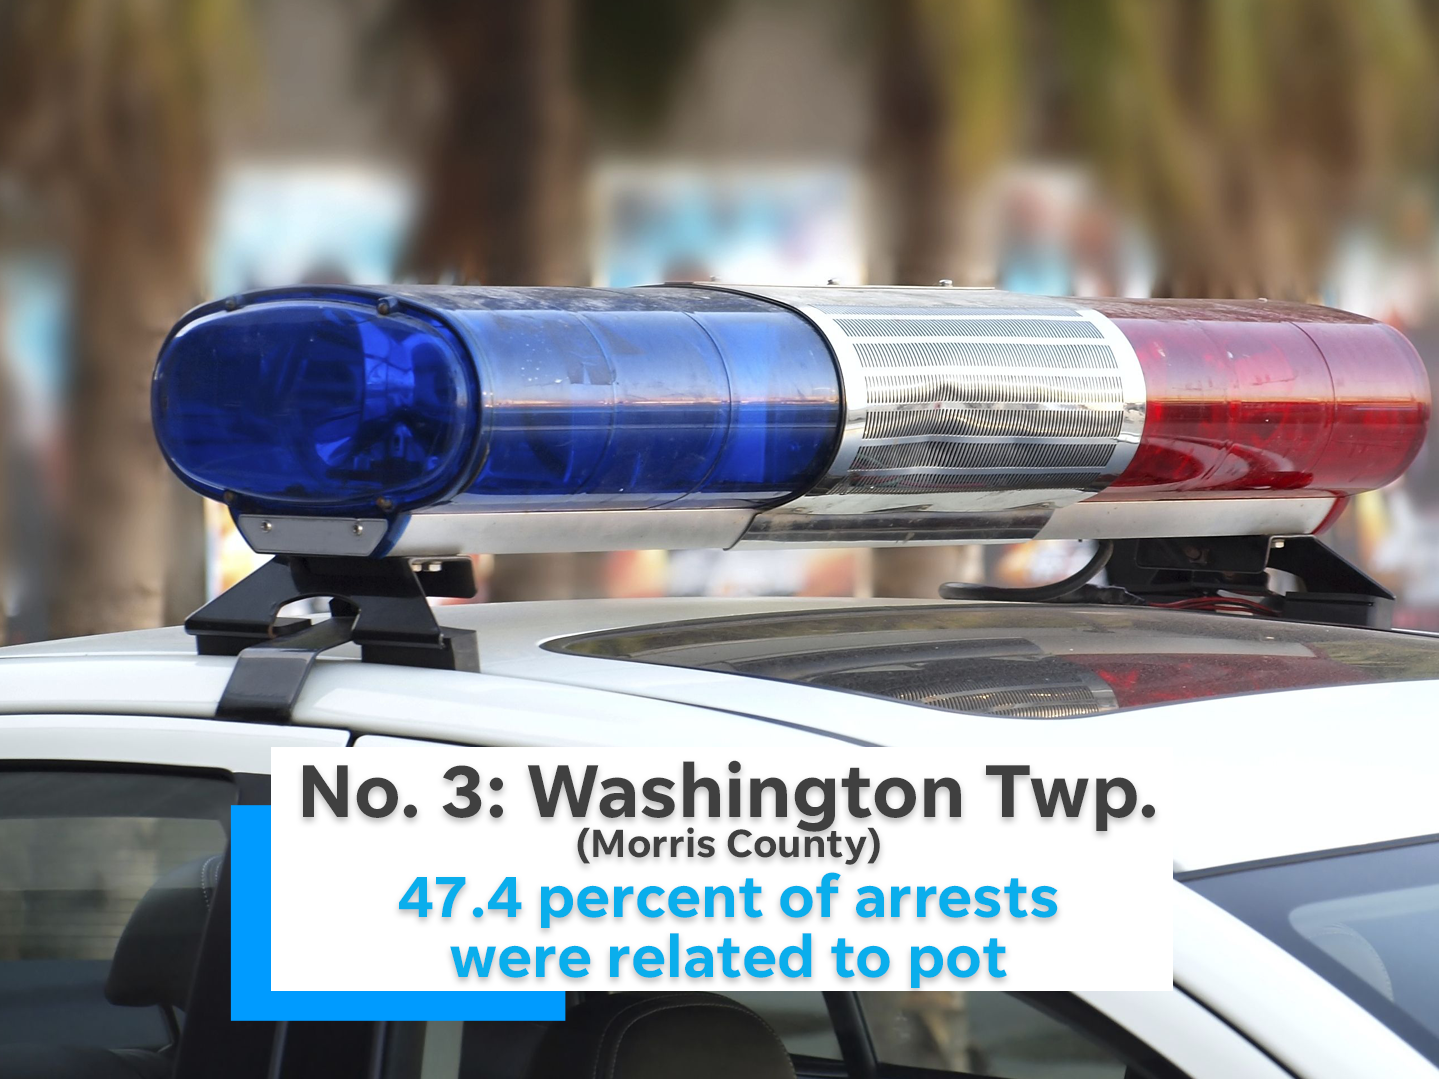 47.4 percent of Washington Township's (Morris County) arrests were related to marijuana.